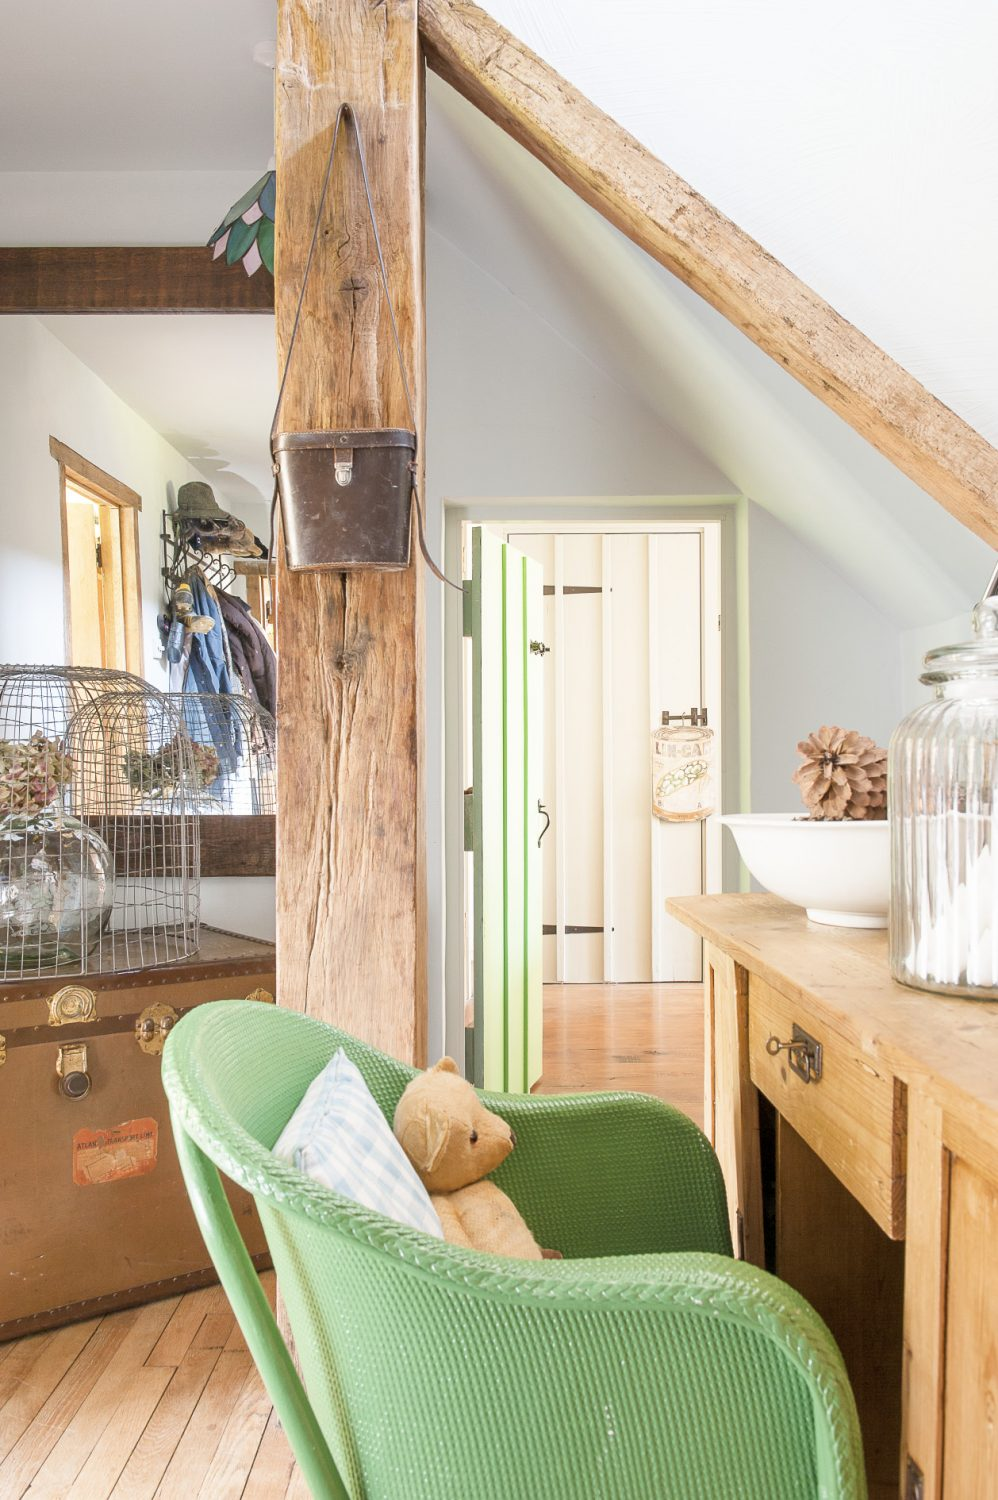 A tiny door in the dining room opens into the hallway. An unusually small pale green Lloyd Loom chair stands at the foot of the stairs in front of an antique pine desk. To the left stands an old travelling trunk topped by a wire garden basket upside down over a vase